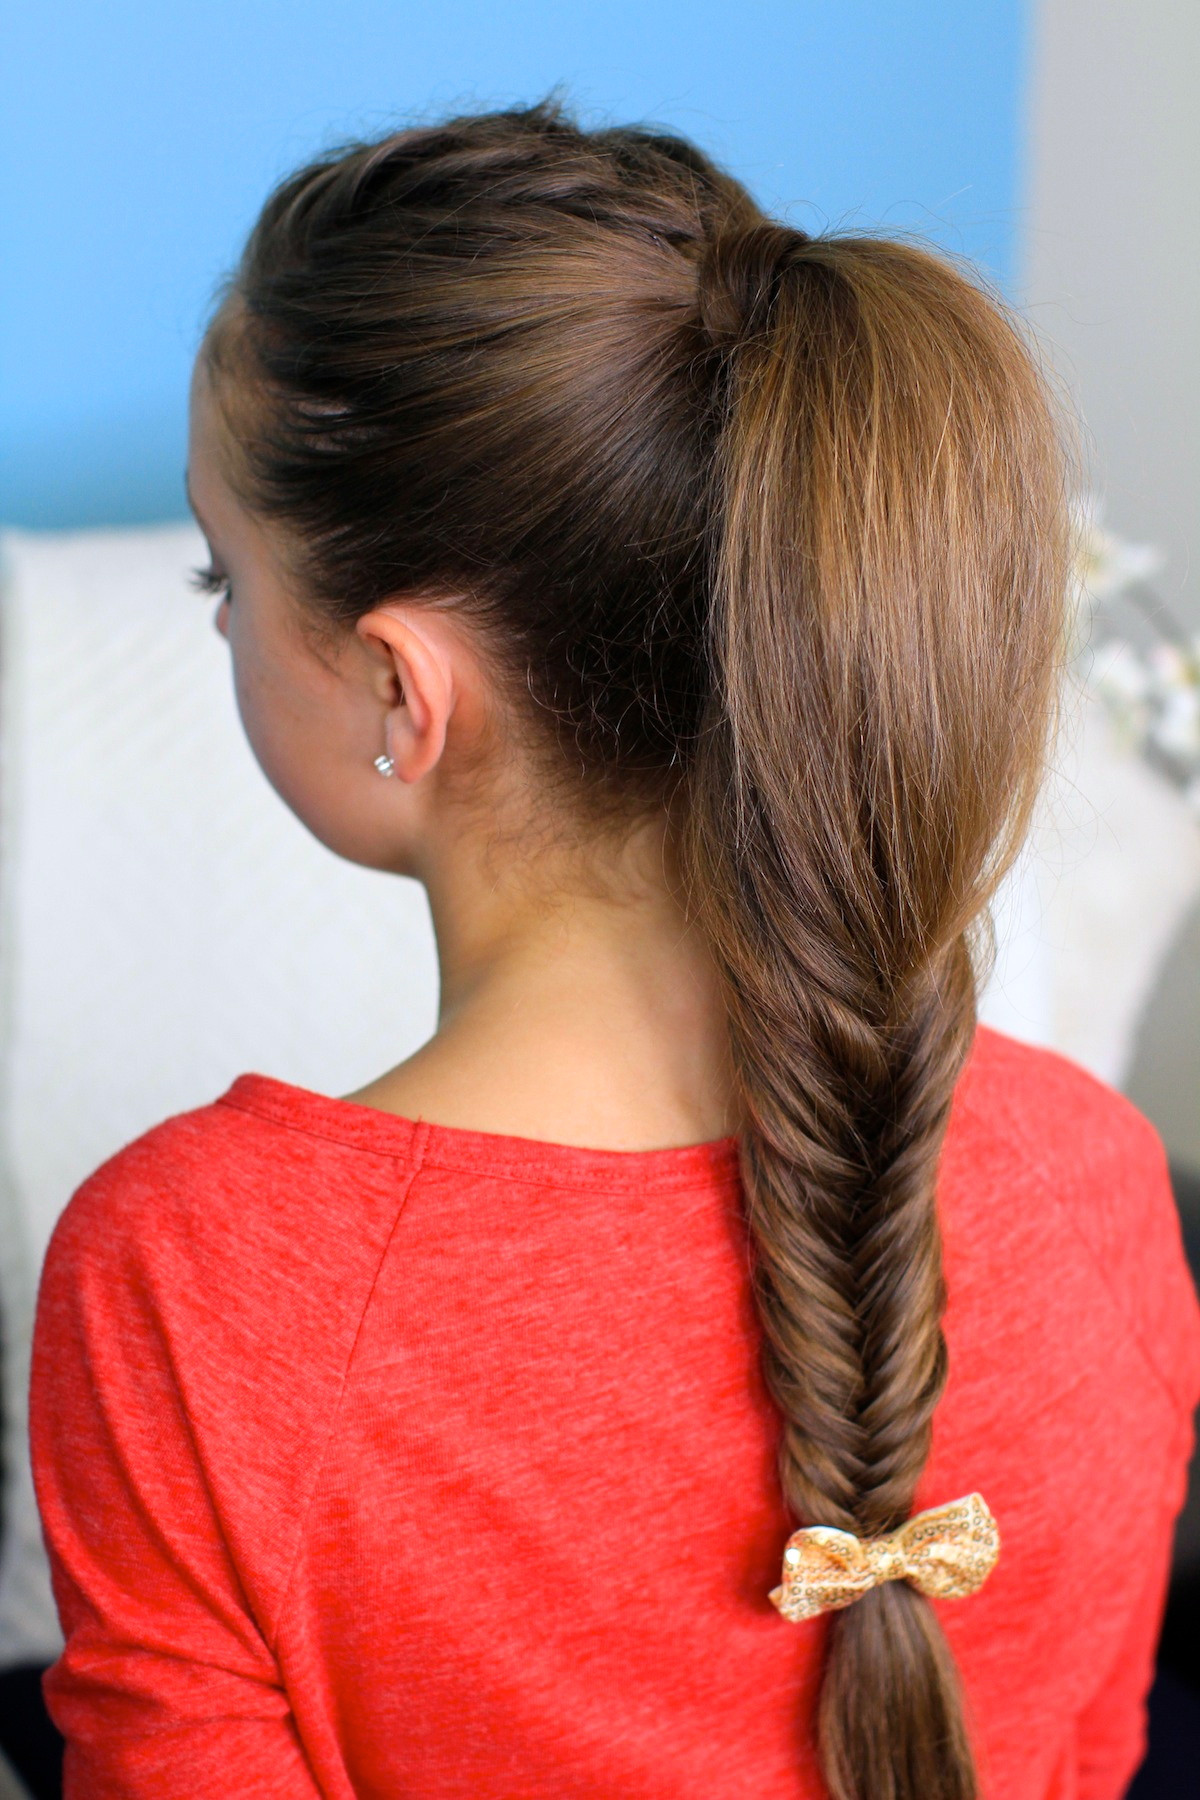 Cute Hairstyles For Braids  Fluffy Fishtail Braid Hairstyles for Long Hair